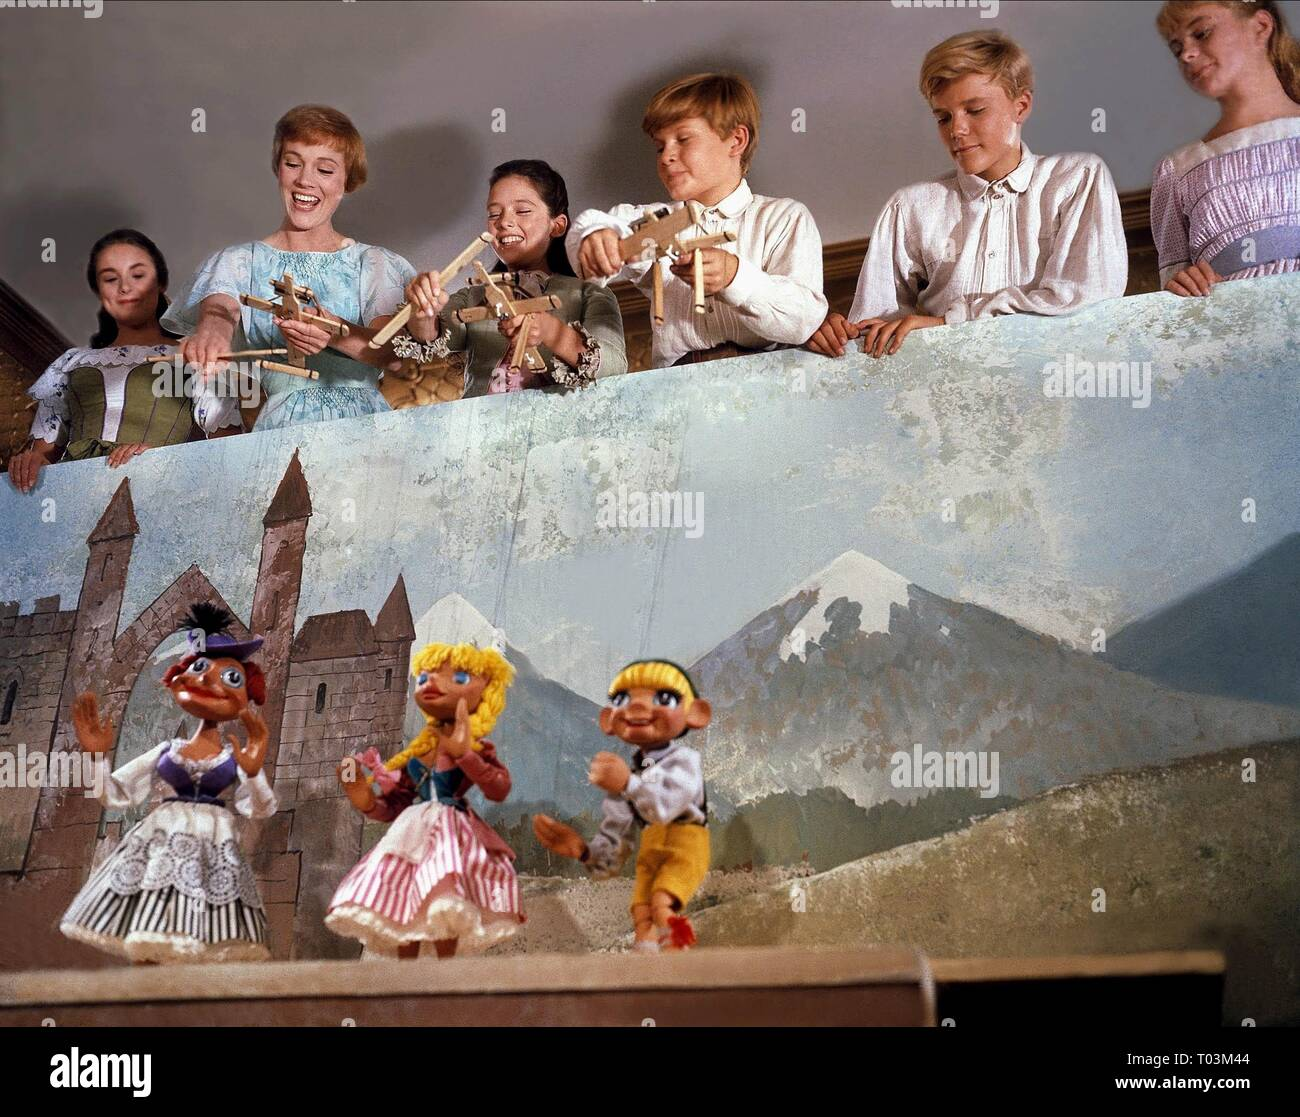 CHARMIAN CARR, JULIE ANDREWS, HEATHER MENZIES, DUANE CHASE, NICHOLAS HAMMOND, PEGGY WOOD, THE SOUND OF MUSIC, 1965 - Stock Image